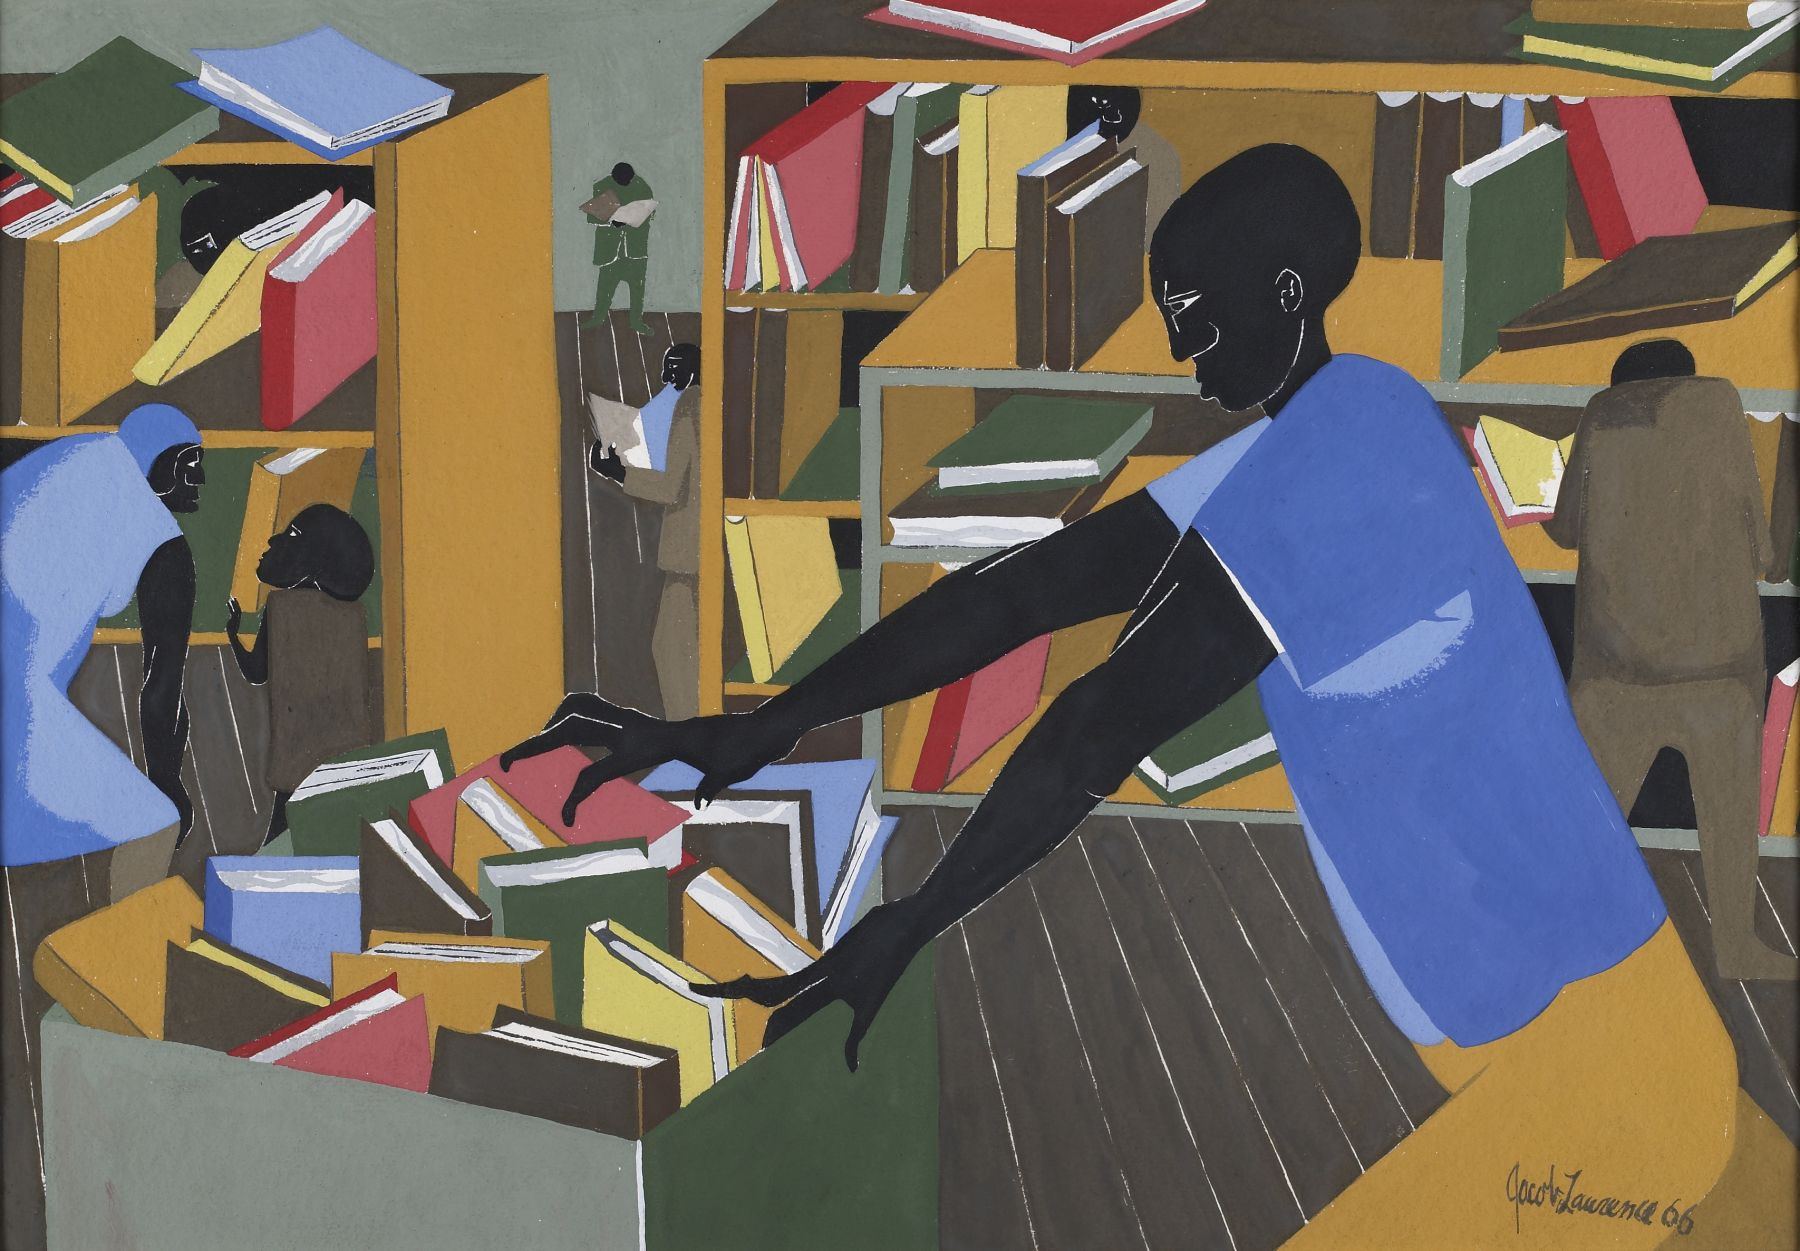 The Library,1978 Silkscreen on paper